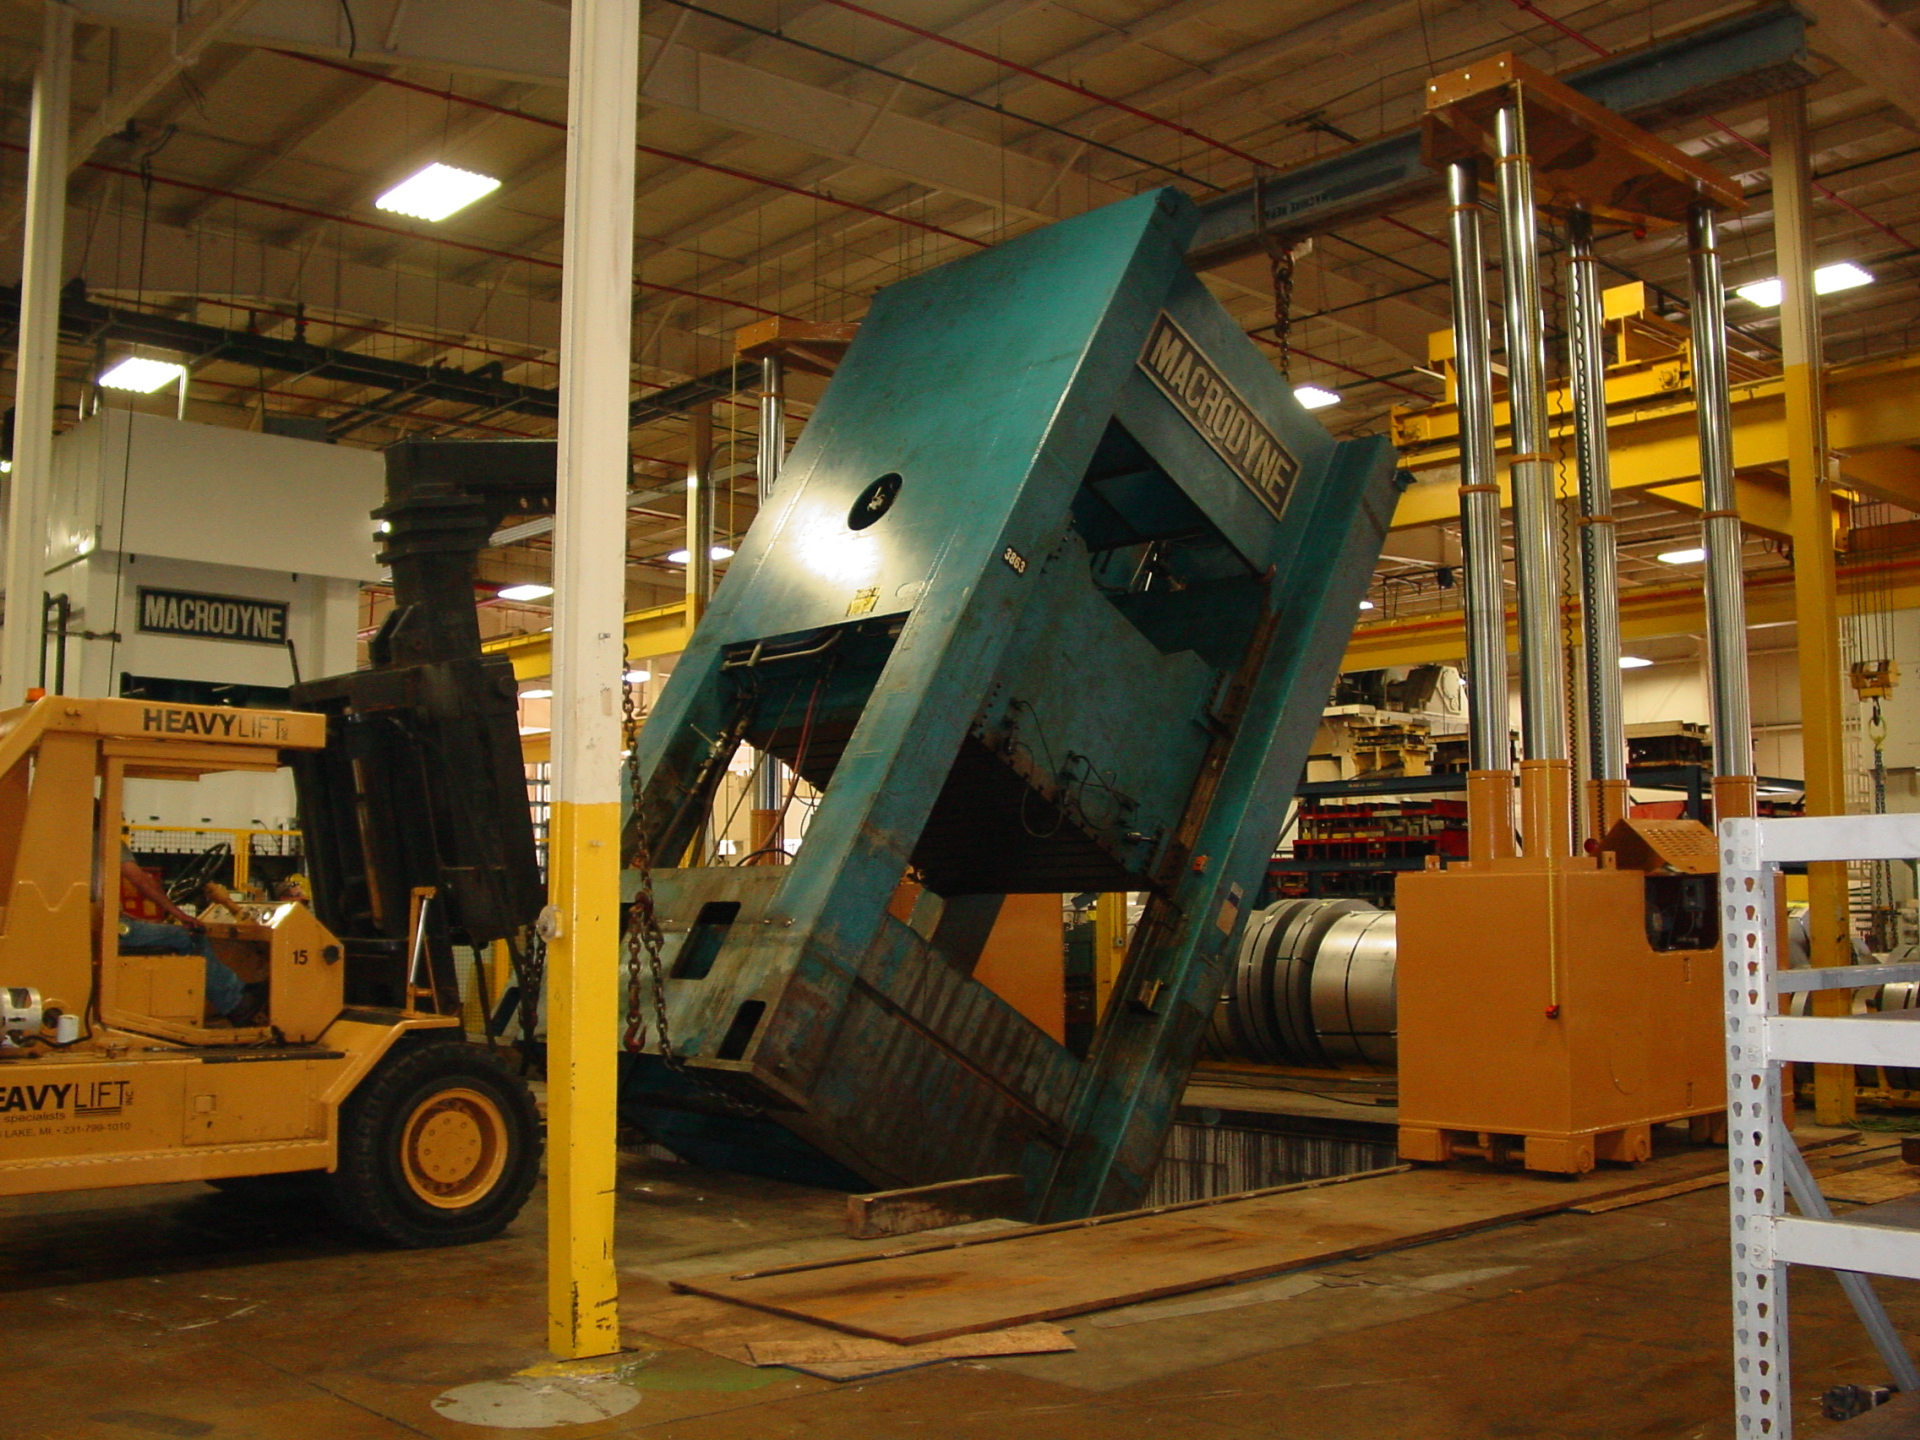 Using gantry and 40-ton forklift to stand up and place 150K Hydraulic Press.